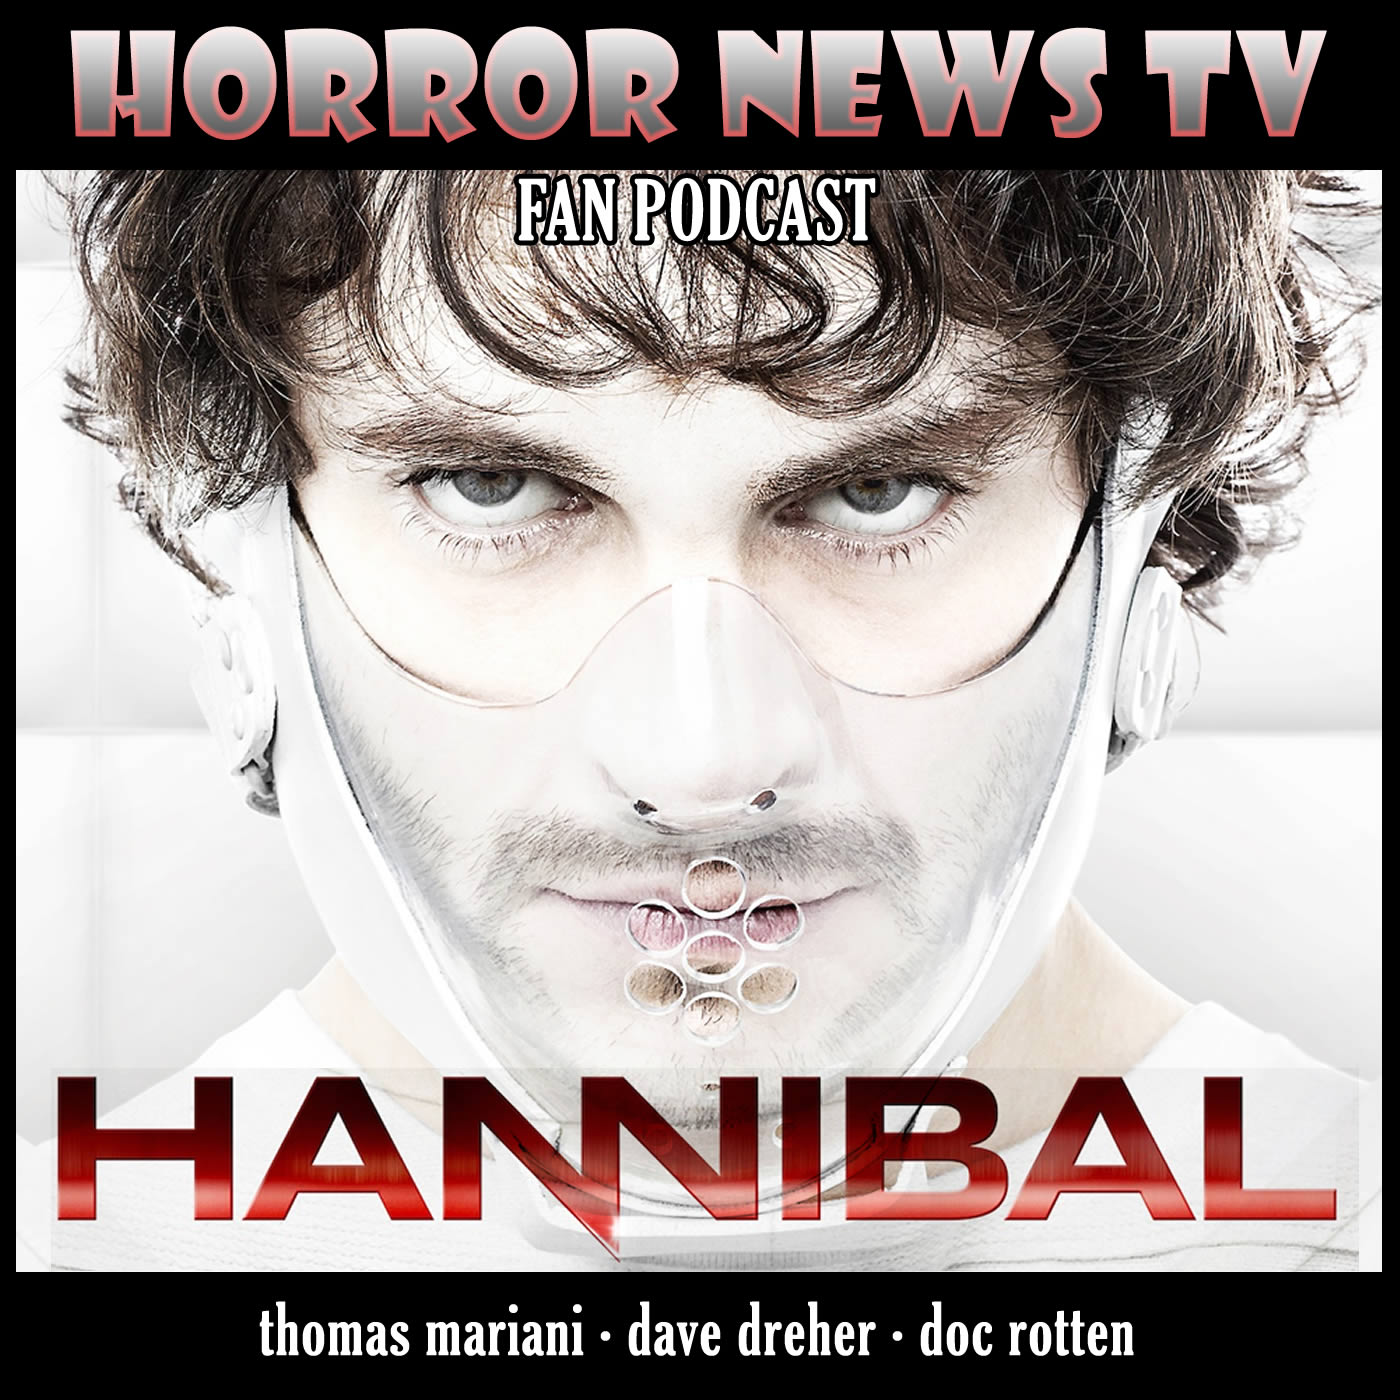 Horror News TV | The Following Fan Podcast